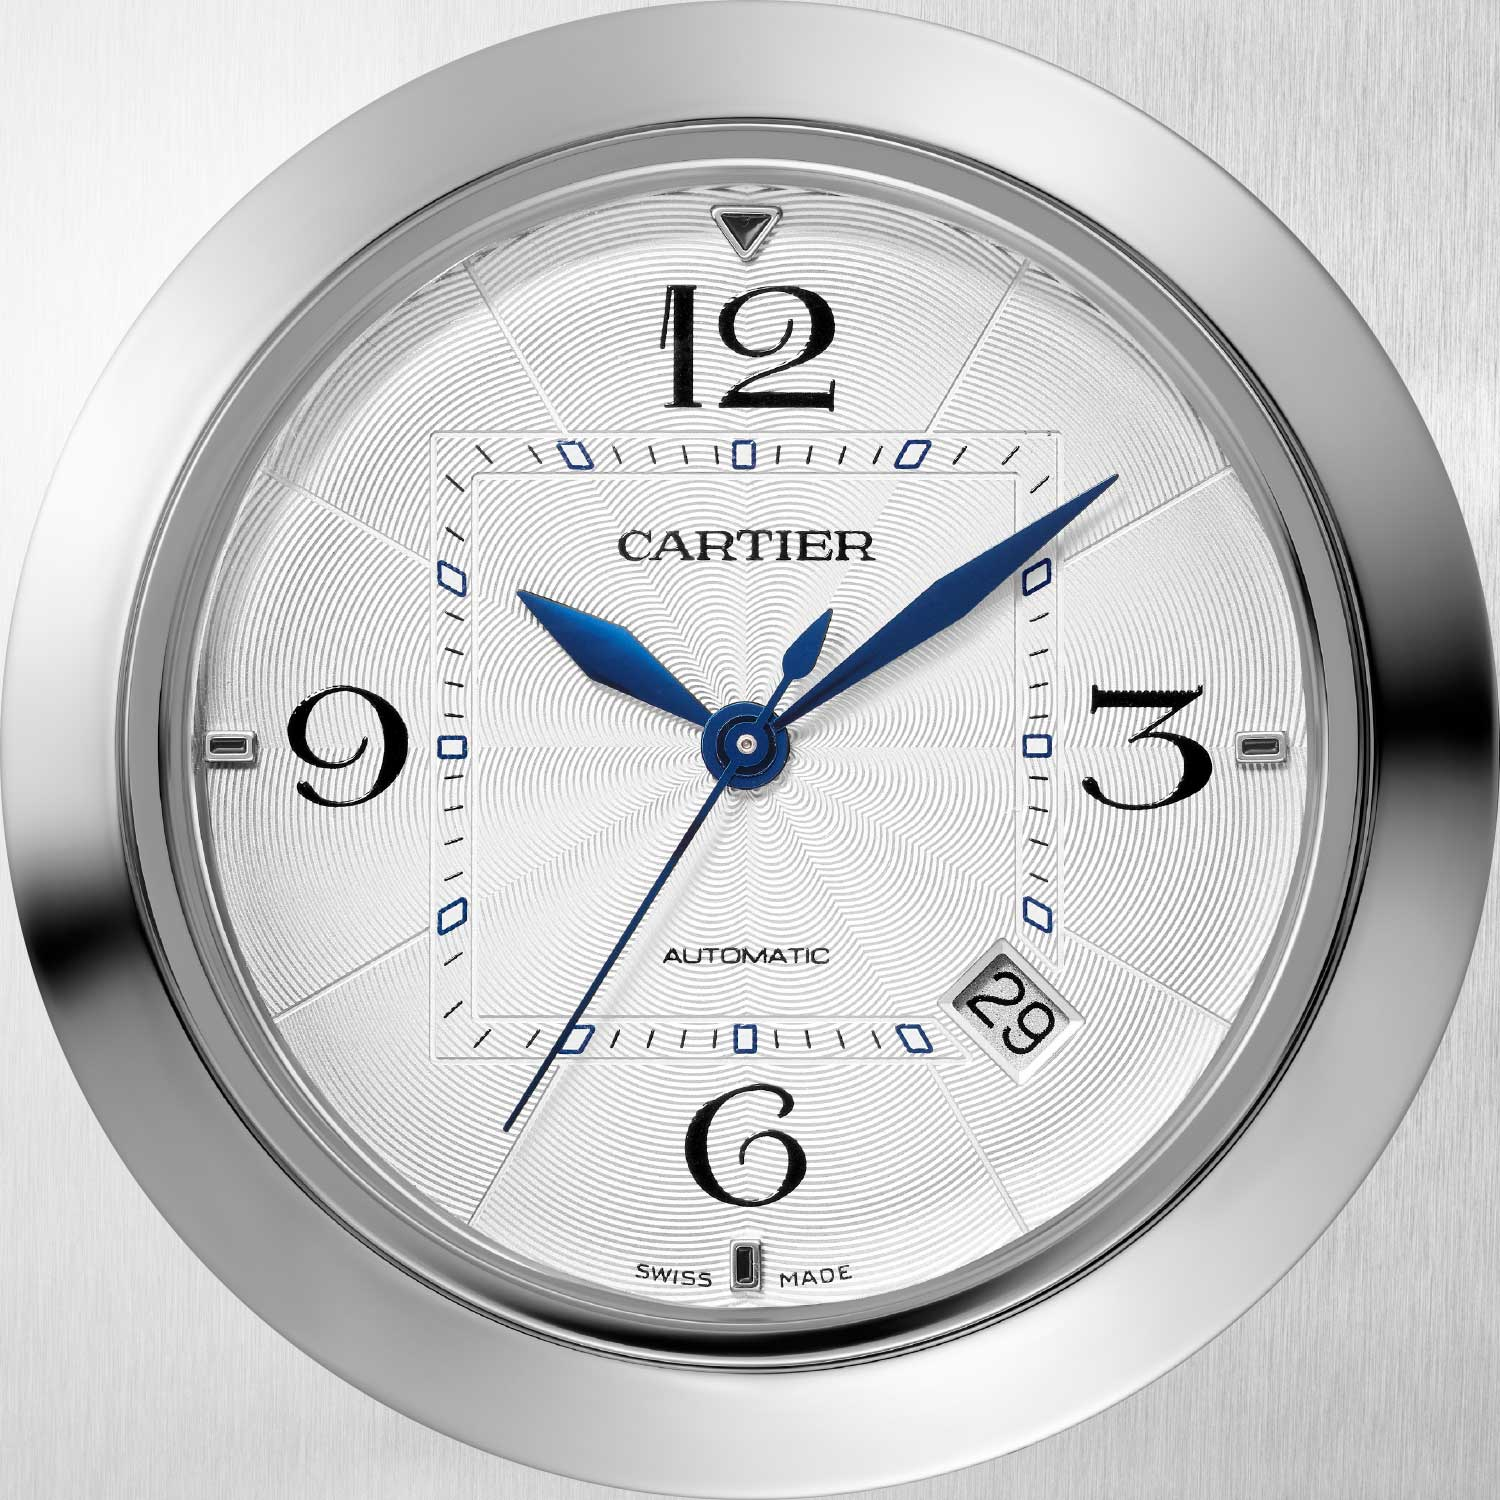 The new Pasha de Cartier watch features a clean but more intricate stamped dial